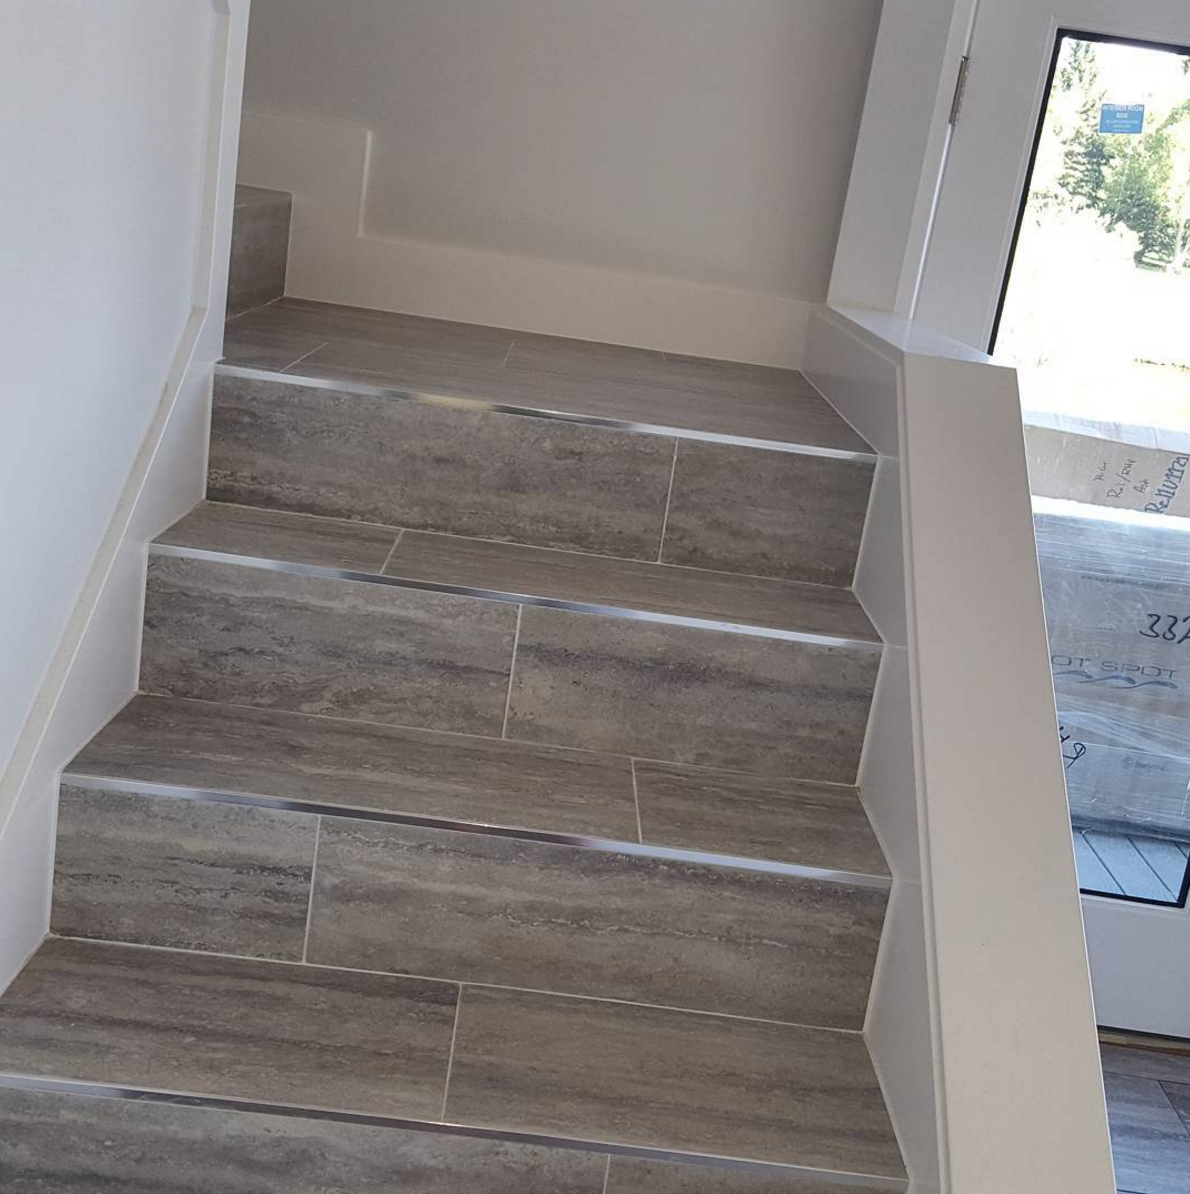 Best Look At Those Schluter Edged Stone Tile Stairs The 400 x 300